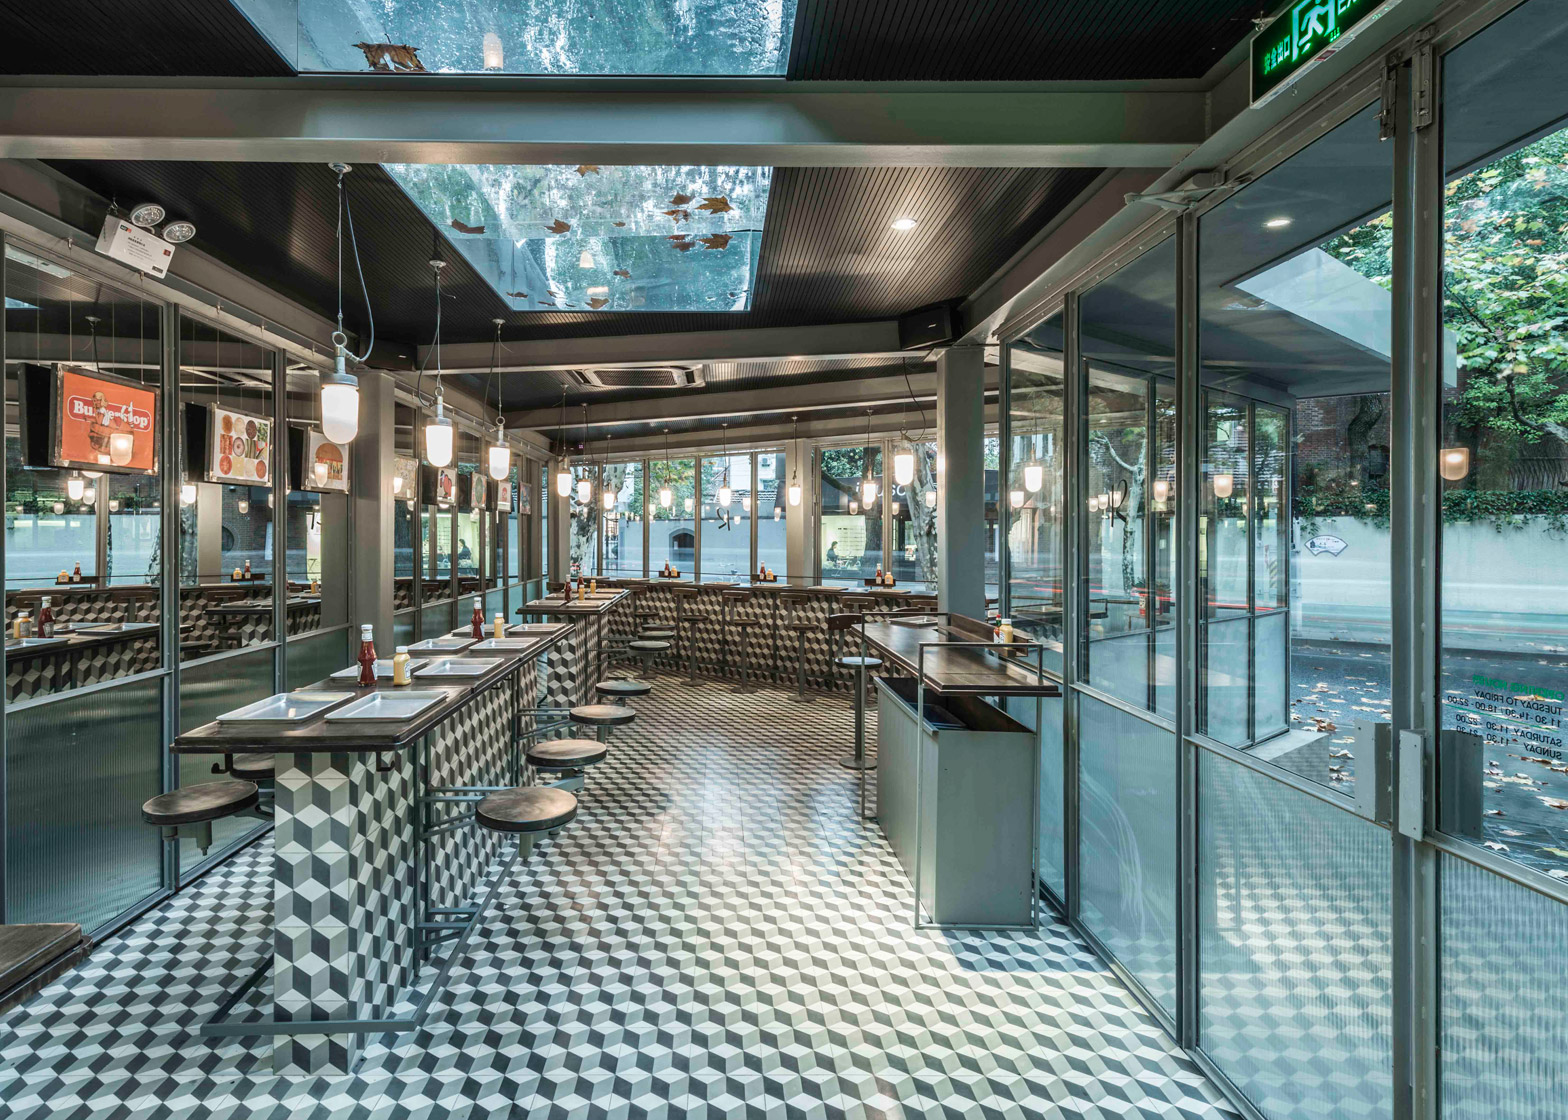 Rachel's Burger restaurant by Neri&Hu Rachel's Burger, Shanghai, China, by Neri&Hu Design and Research Office